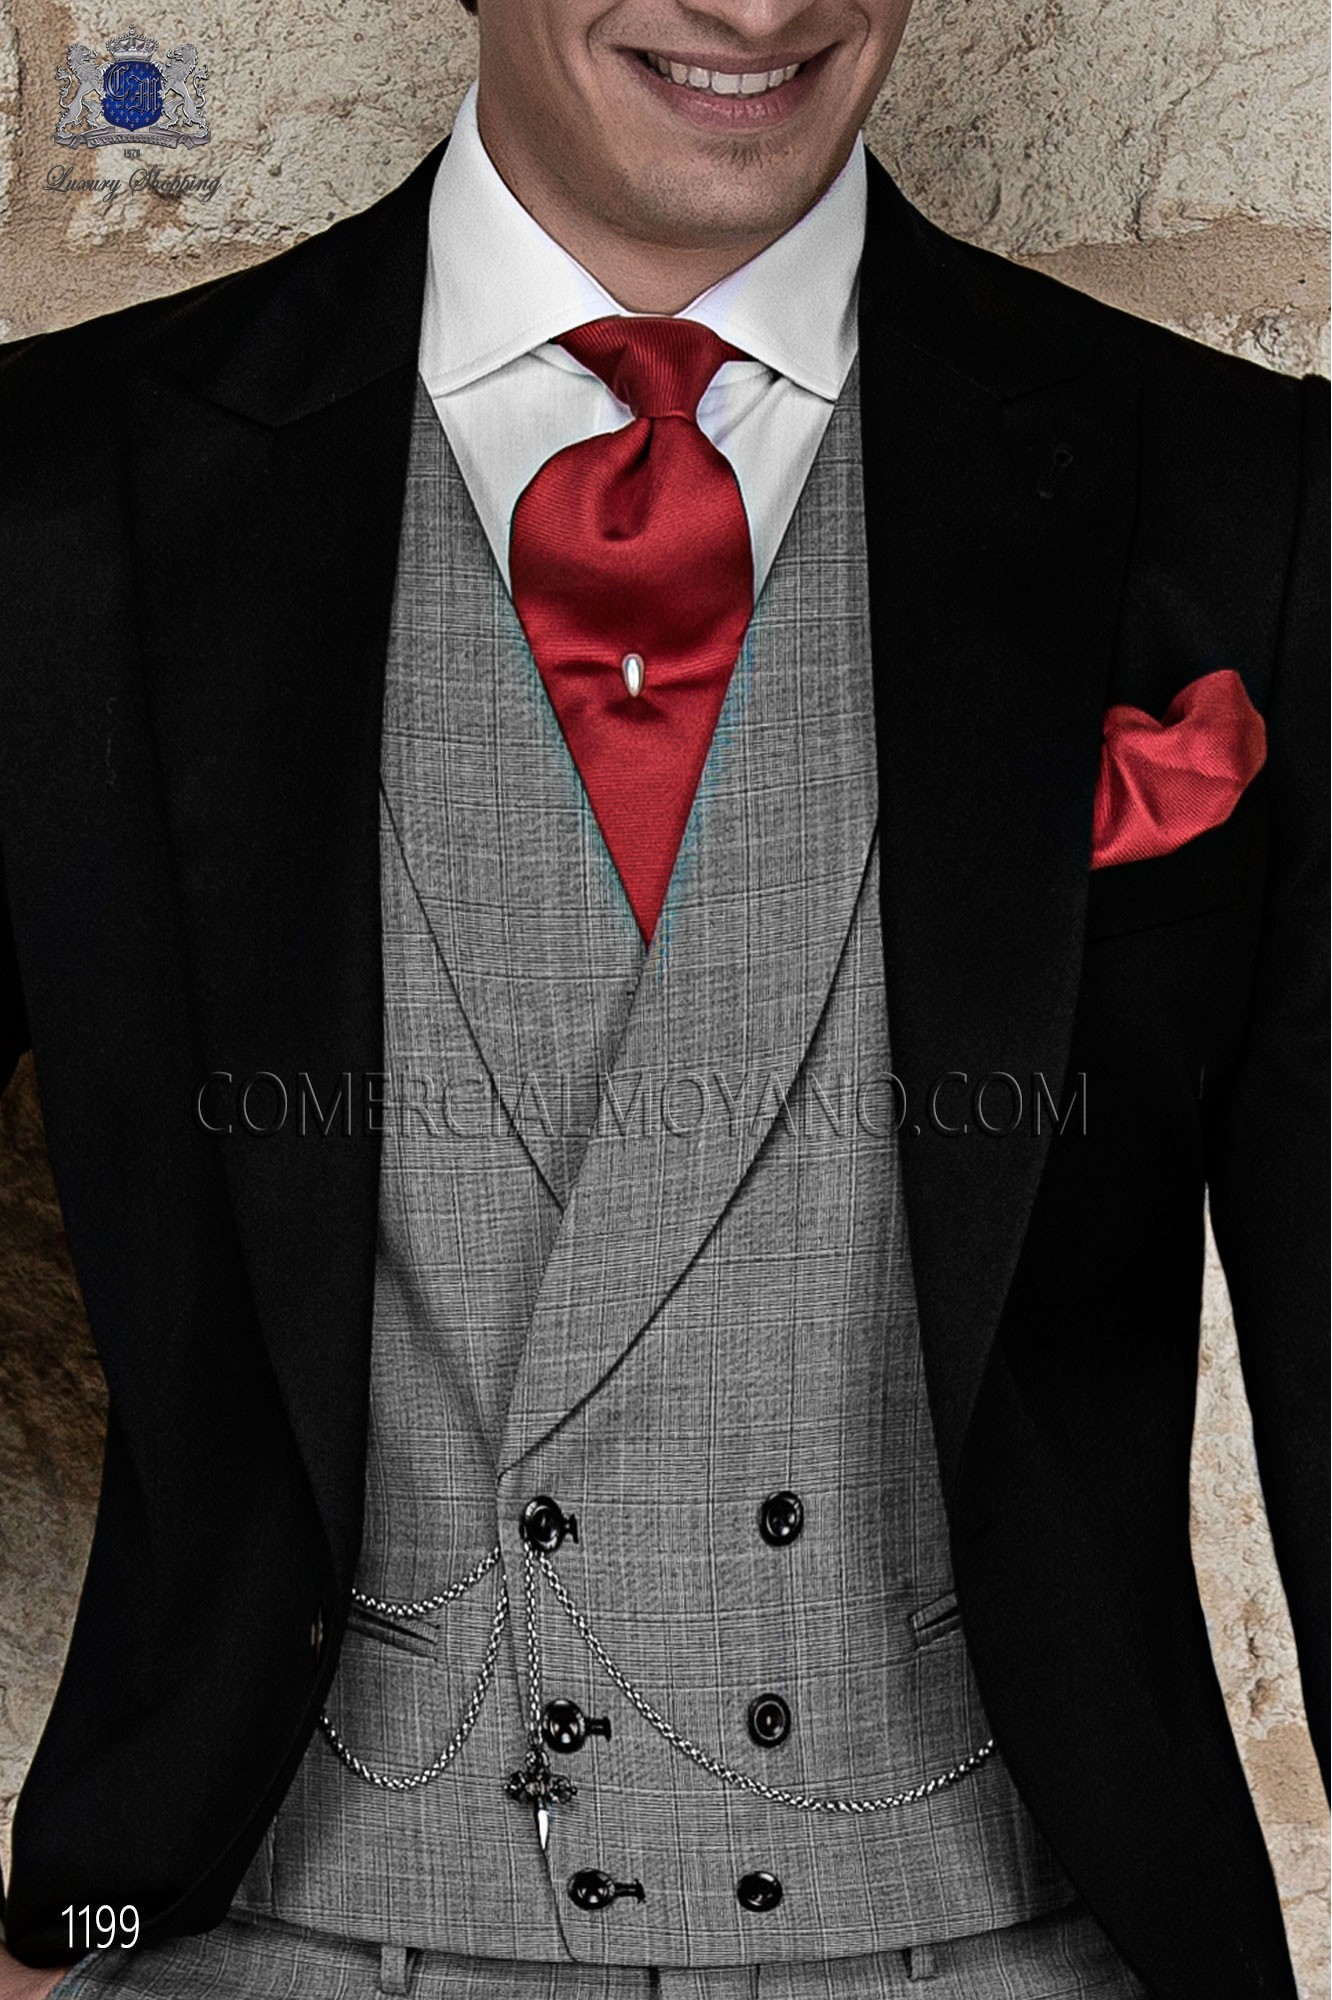 Italian gentleman black men wedding suit, model: 1199 Ottavio Nuccio Gala Gentleman Collection